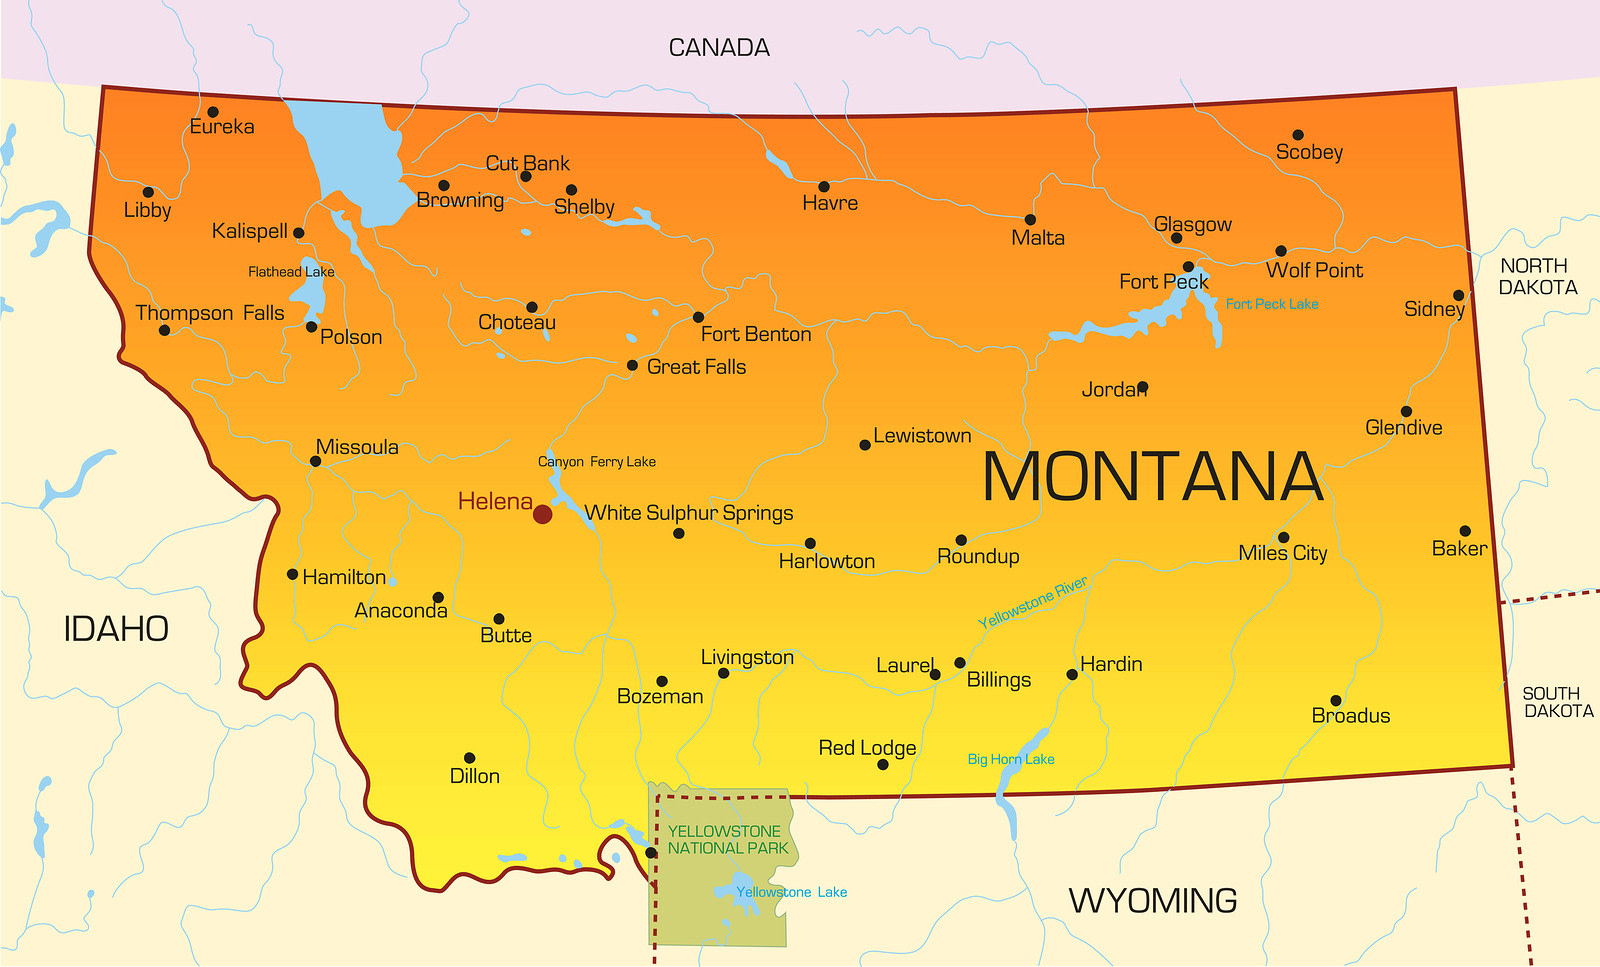 Montana RN Requirements and Training Programs